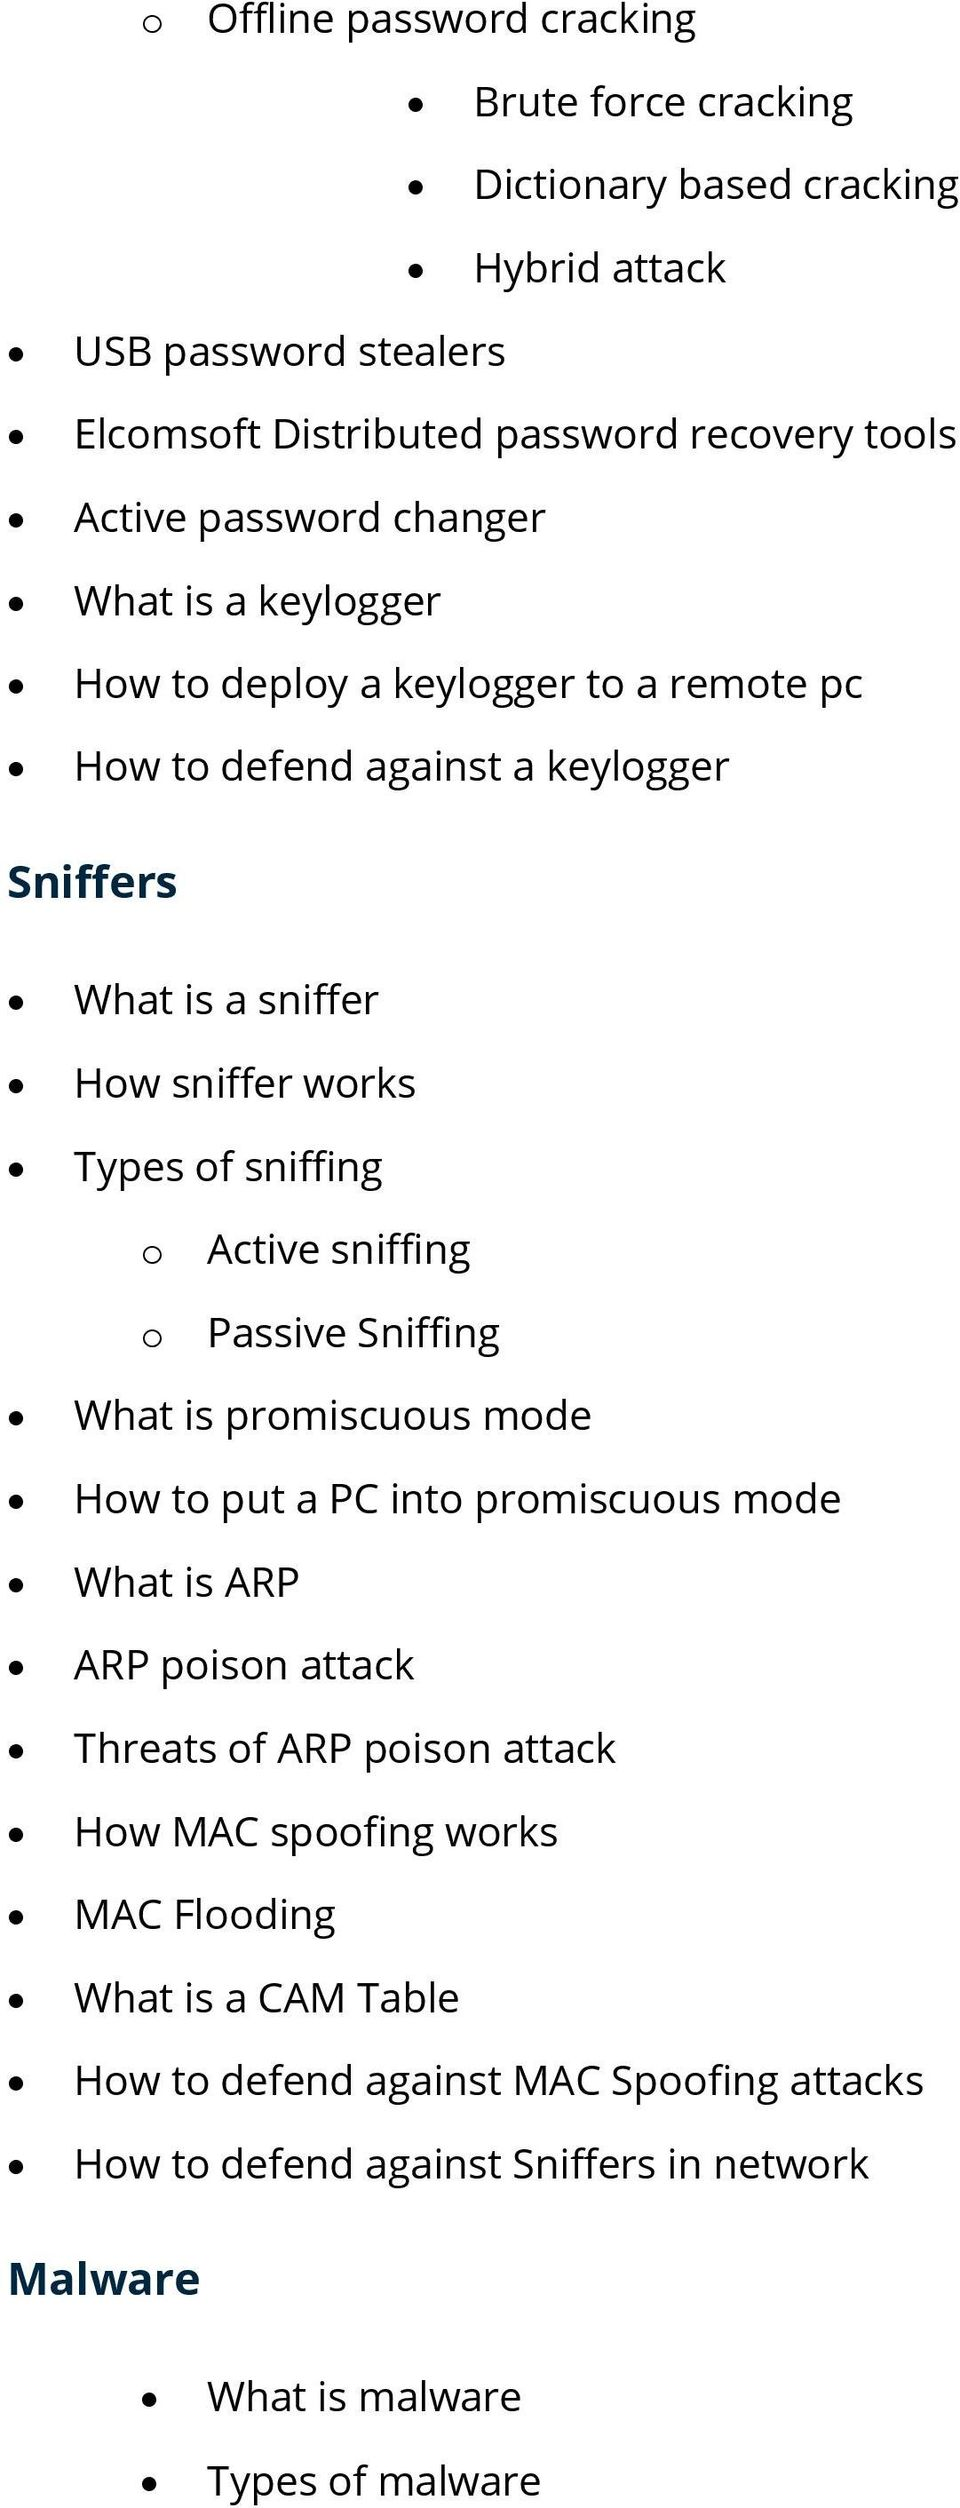 sniffing Active sniffing Passive Sniffing What is prmiscuus mde Hw t put a PC int prmiscuus mde What is ARP ARP pisn attack Threats f ARP pisn attack Hw